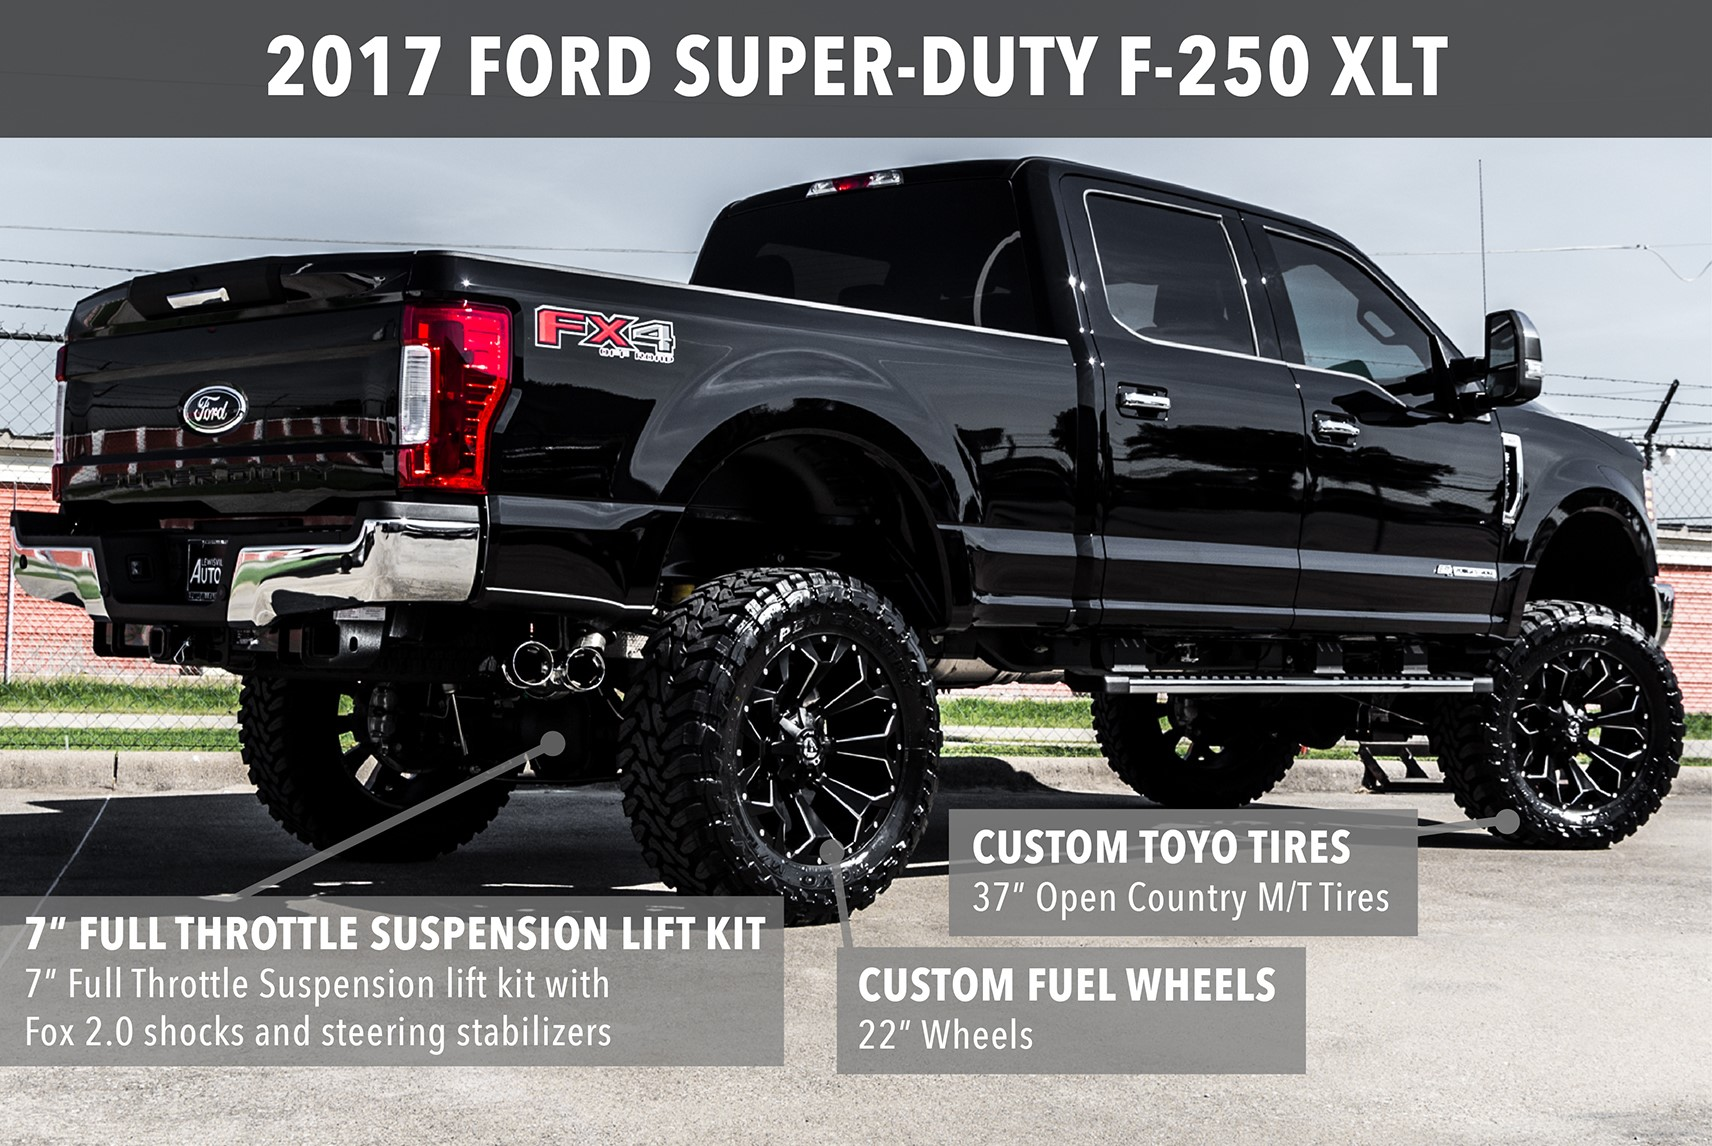 2018 Ford F 250 Super Duty Features & s